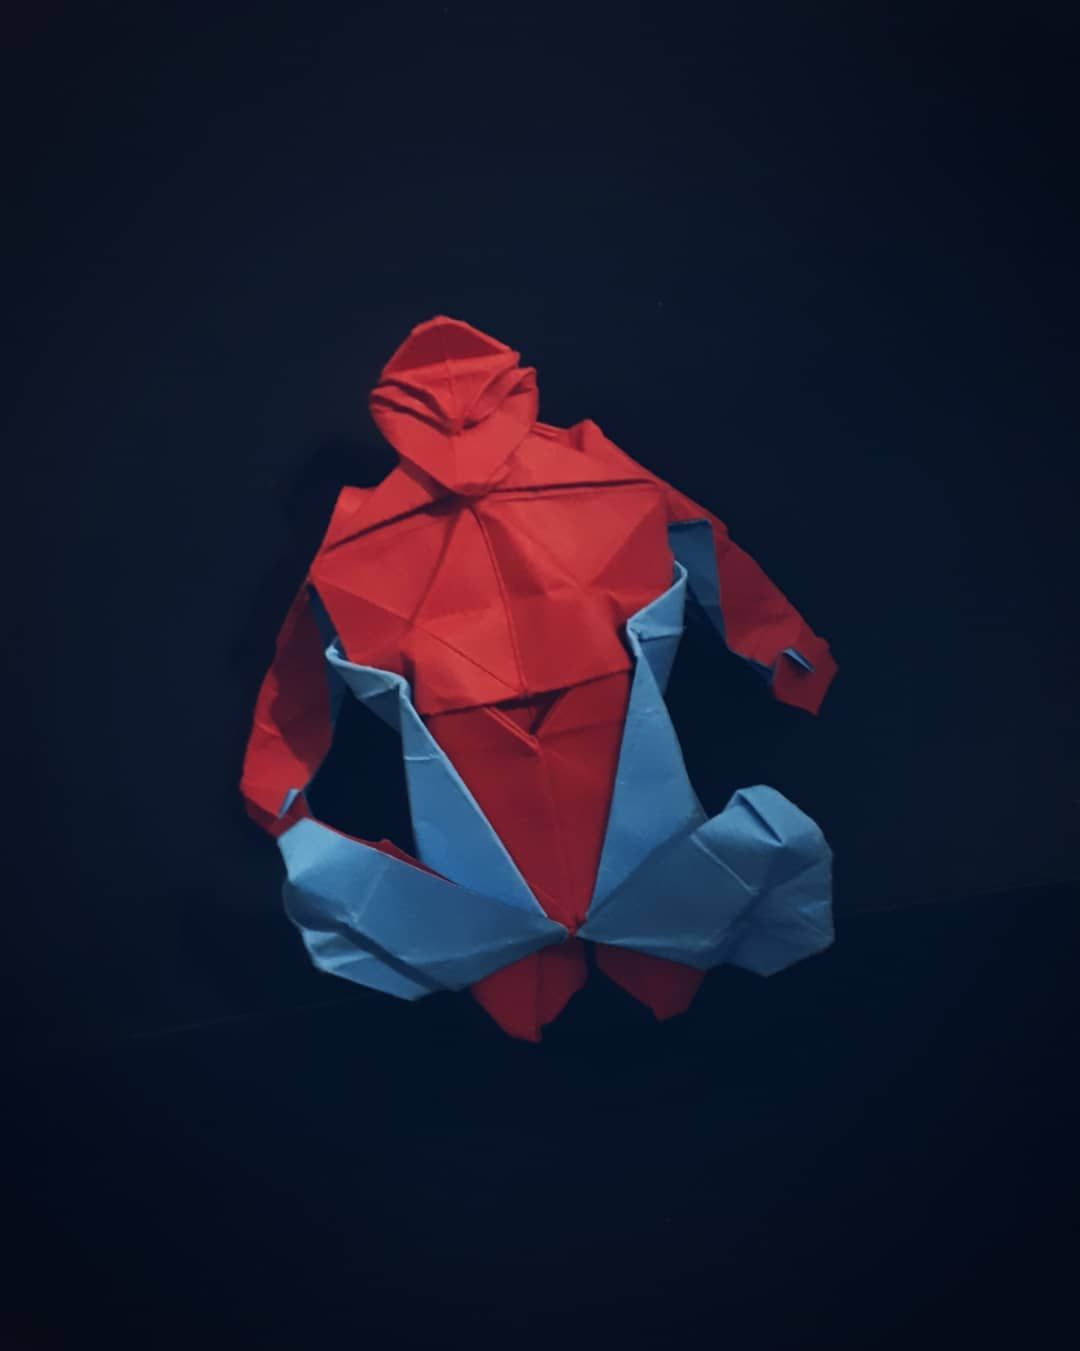 Origami Spiderman By Juanfran Carrillo Fold By Me I Fold This Model Because I M A Big Fan Of Marvel Comics And F Origami Artist Origami Usa Origami Man